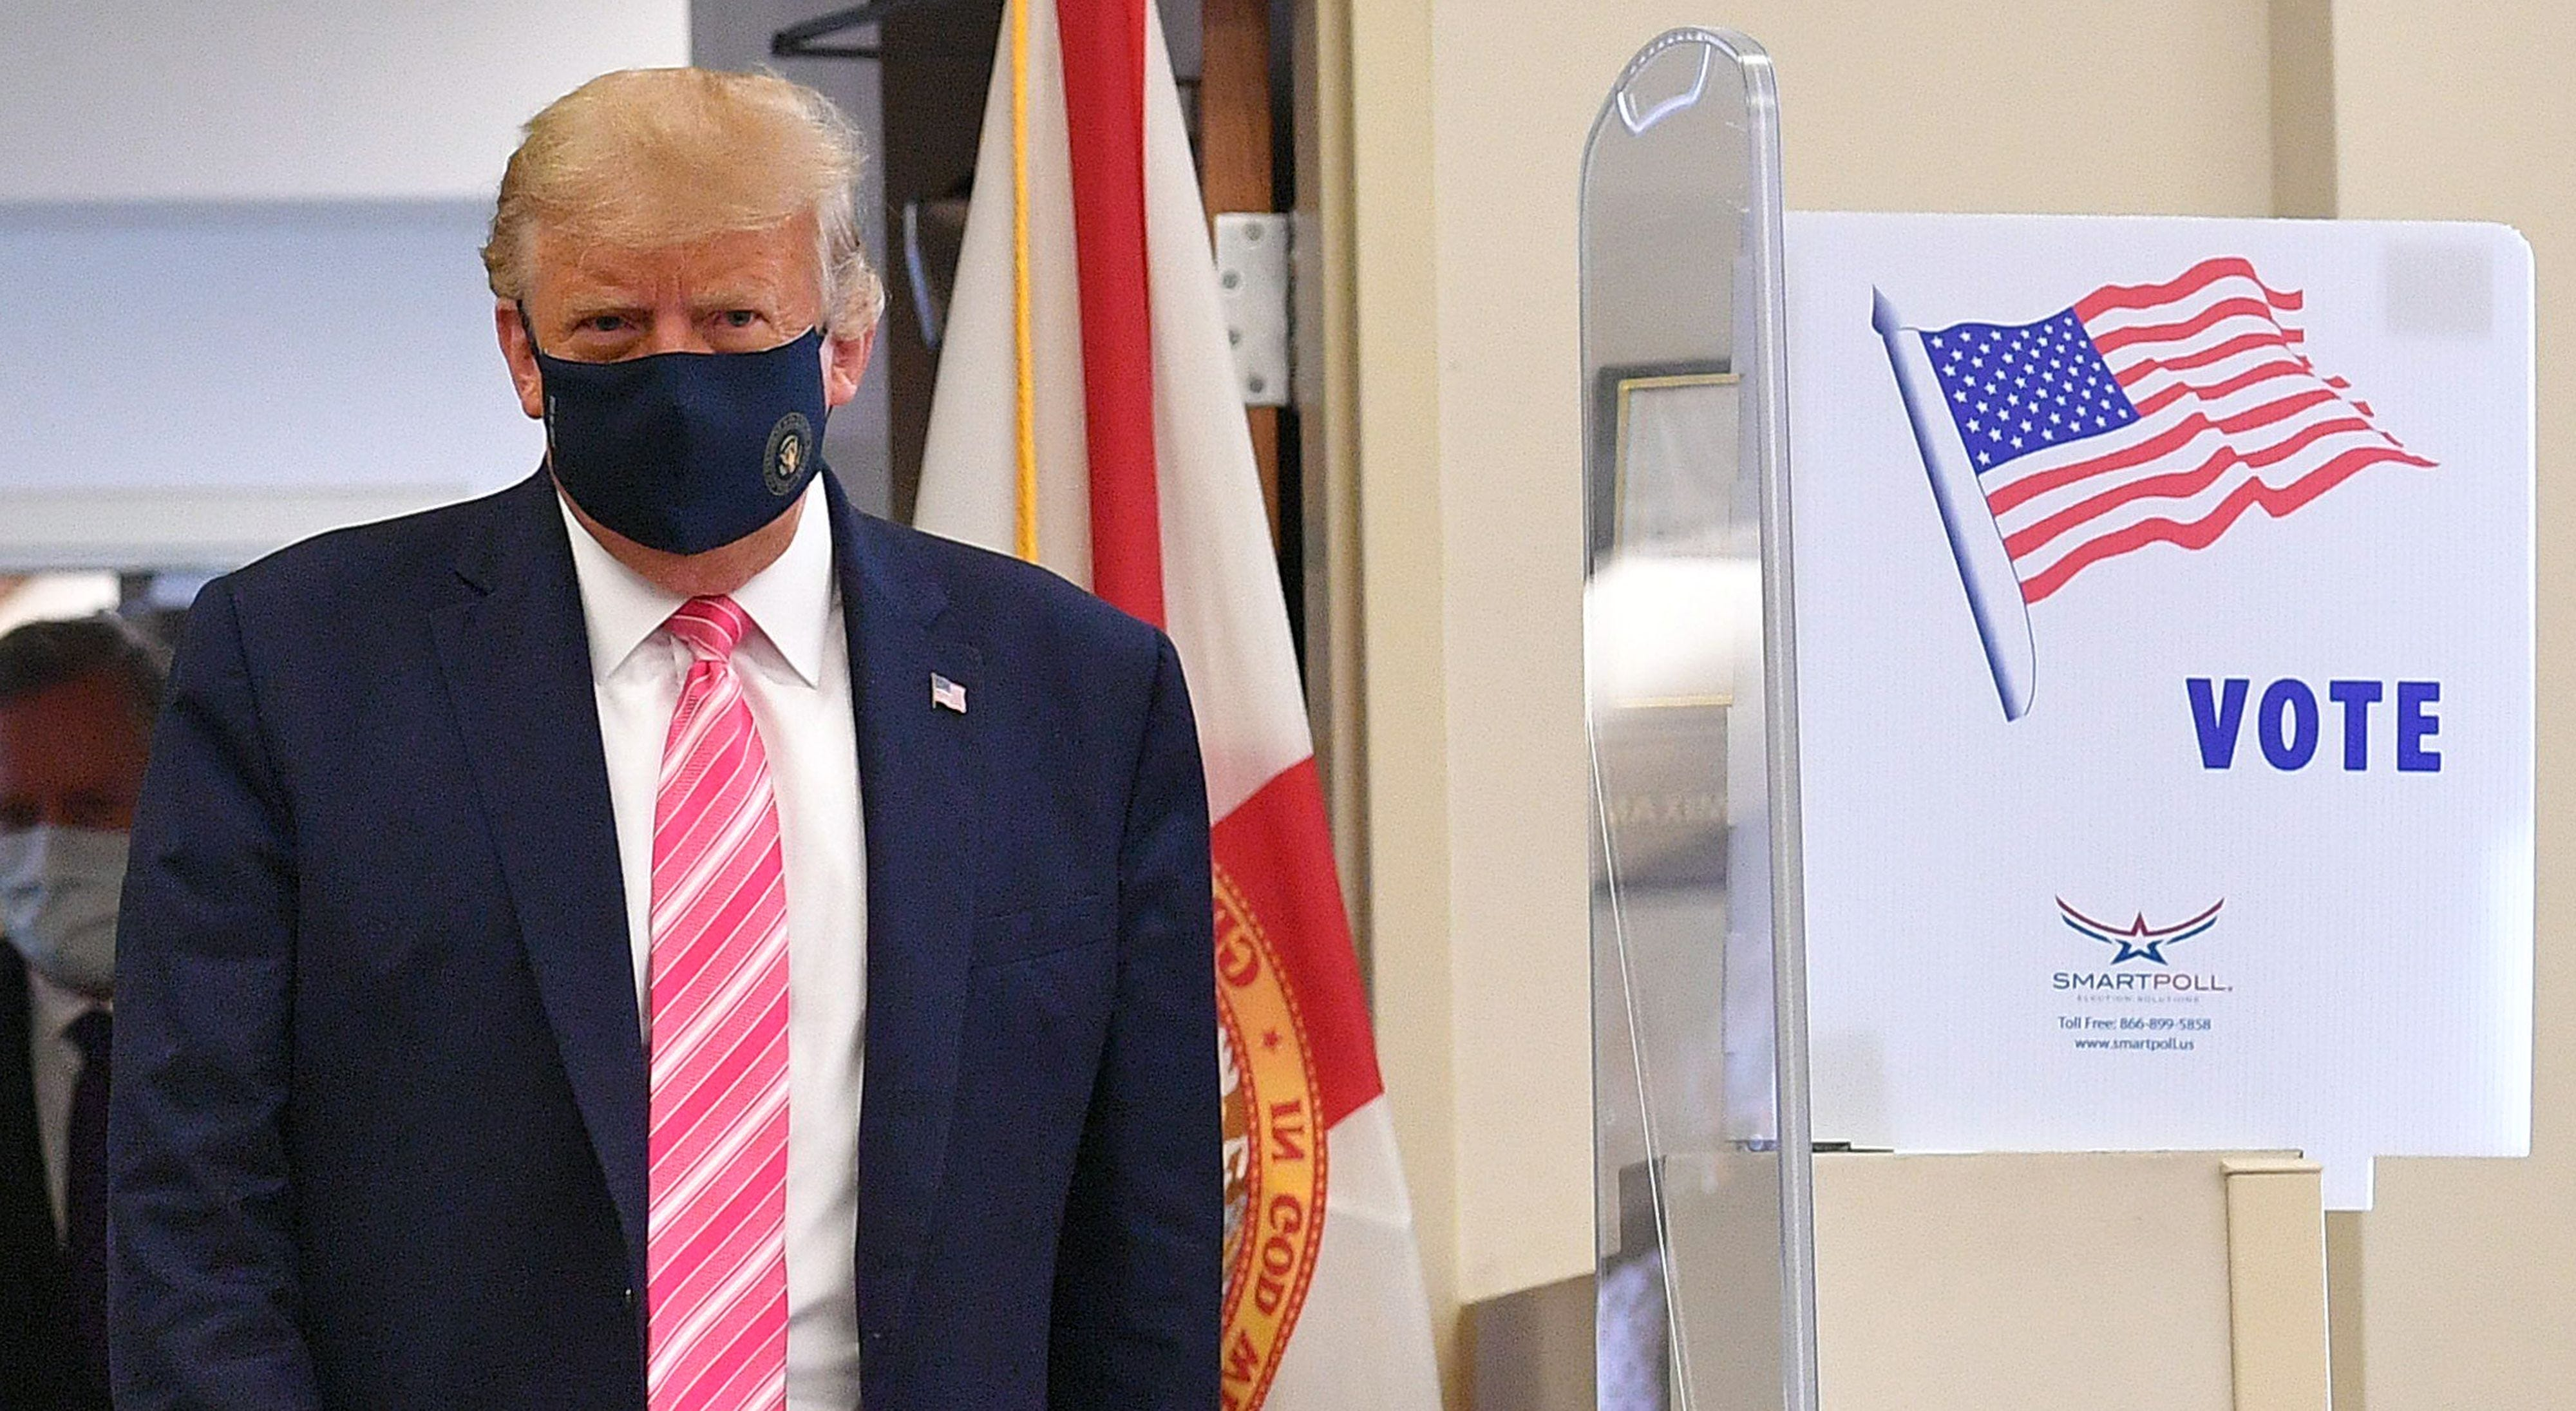 Trump casts a  very secure vote  for himself in Florida: 2020 election updates